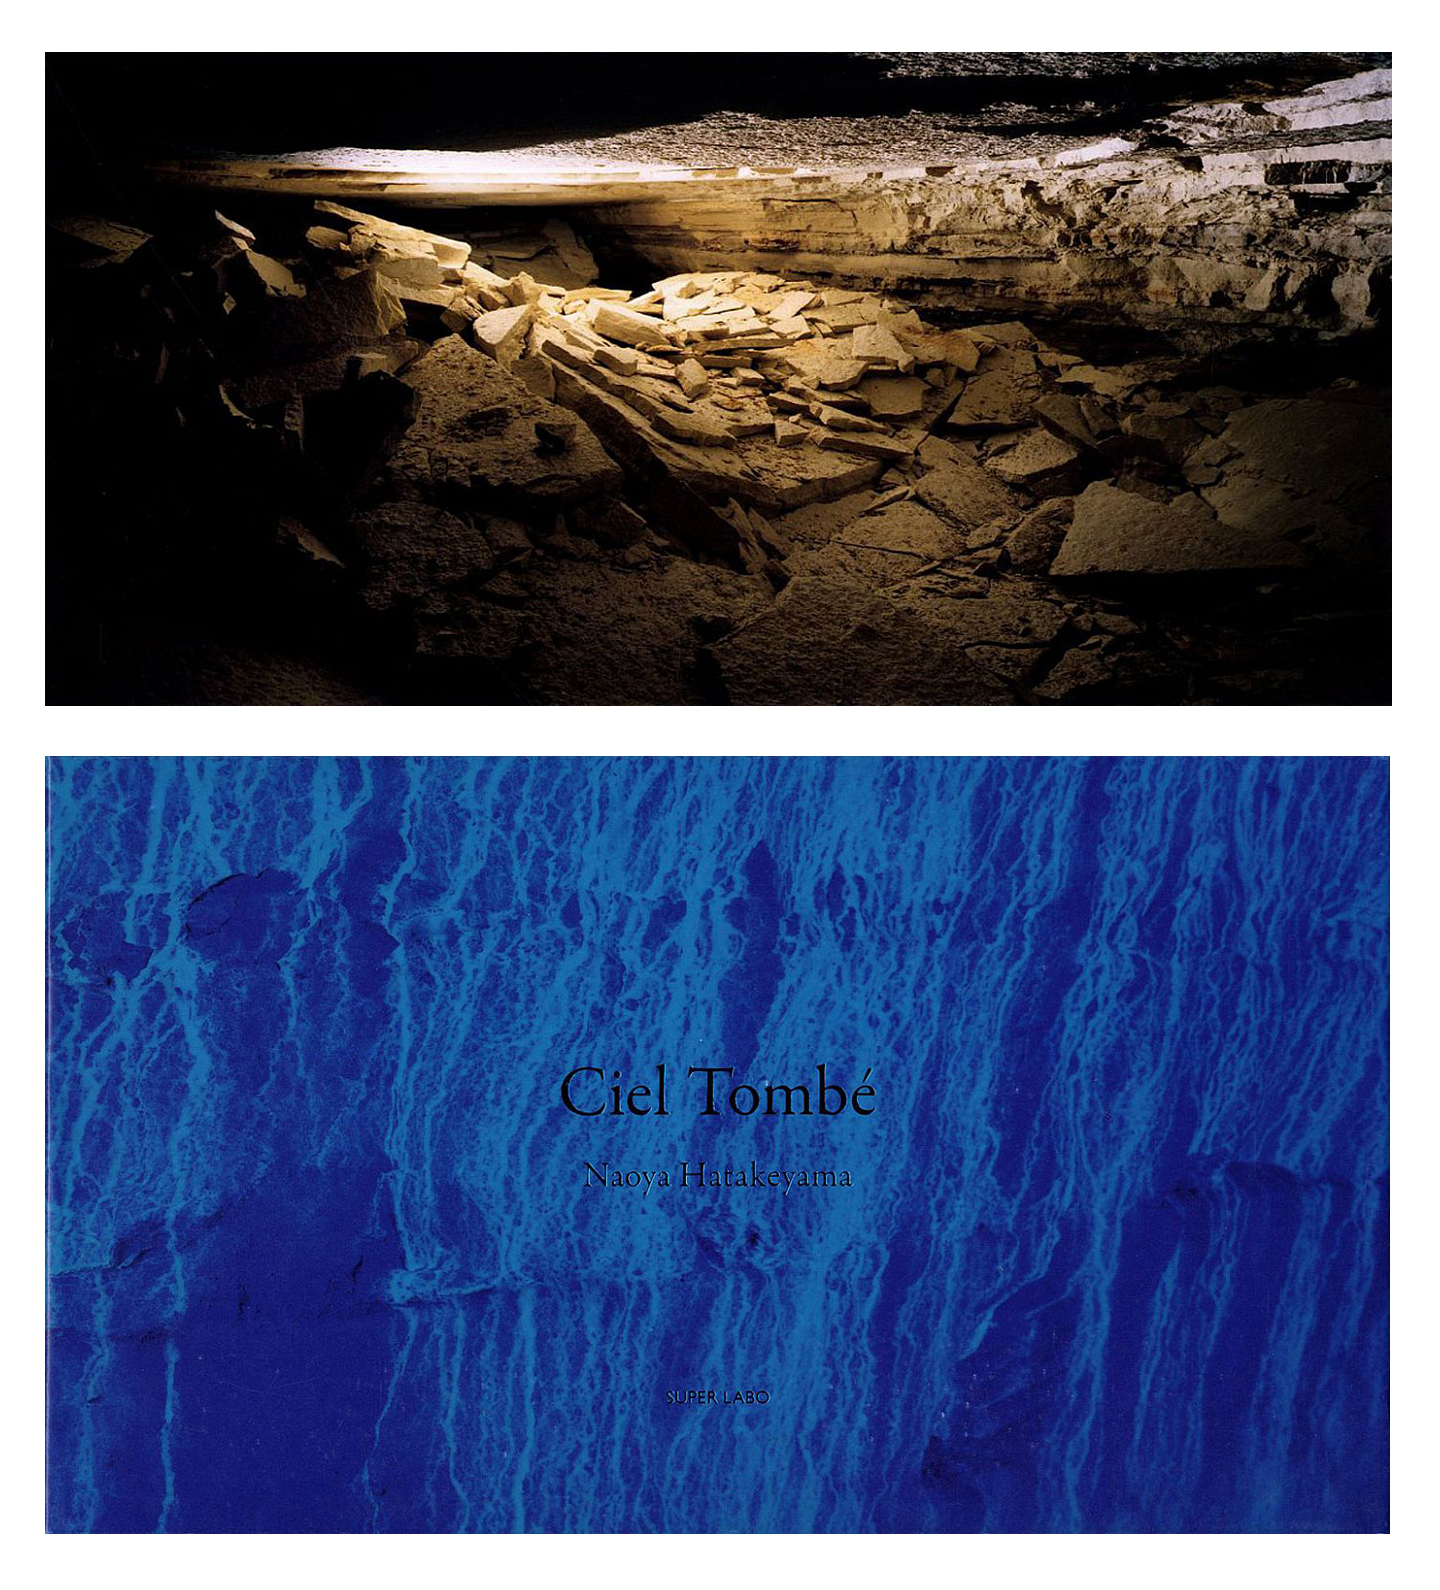 """Naoya Hatakeyama: Ciel Tombé, Limited Boxed Edition (with """"Quarry"""" Print), and a copy of The Astrologer, by Sylvie Germain"""